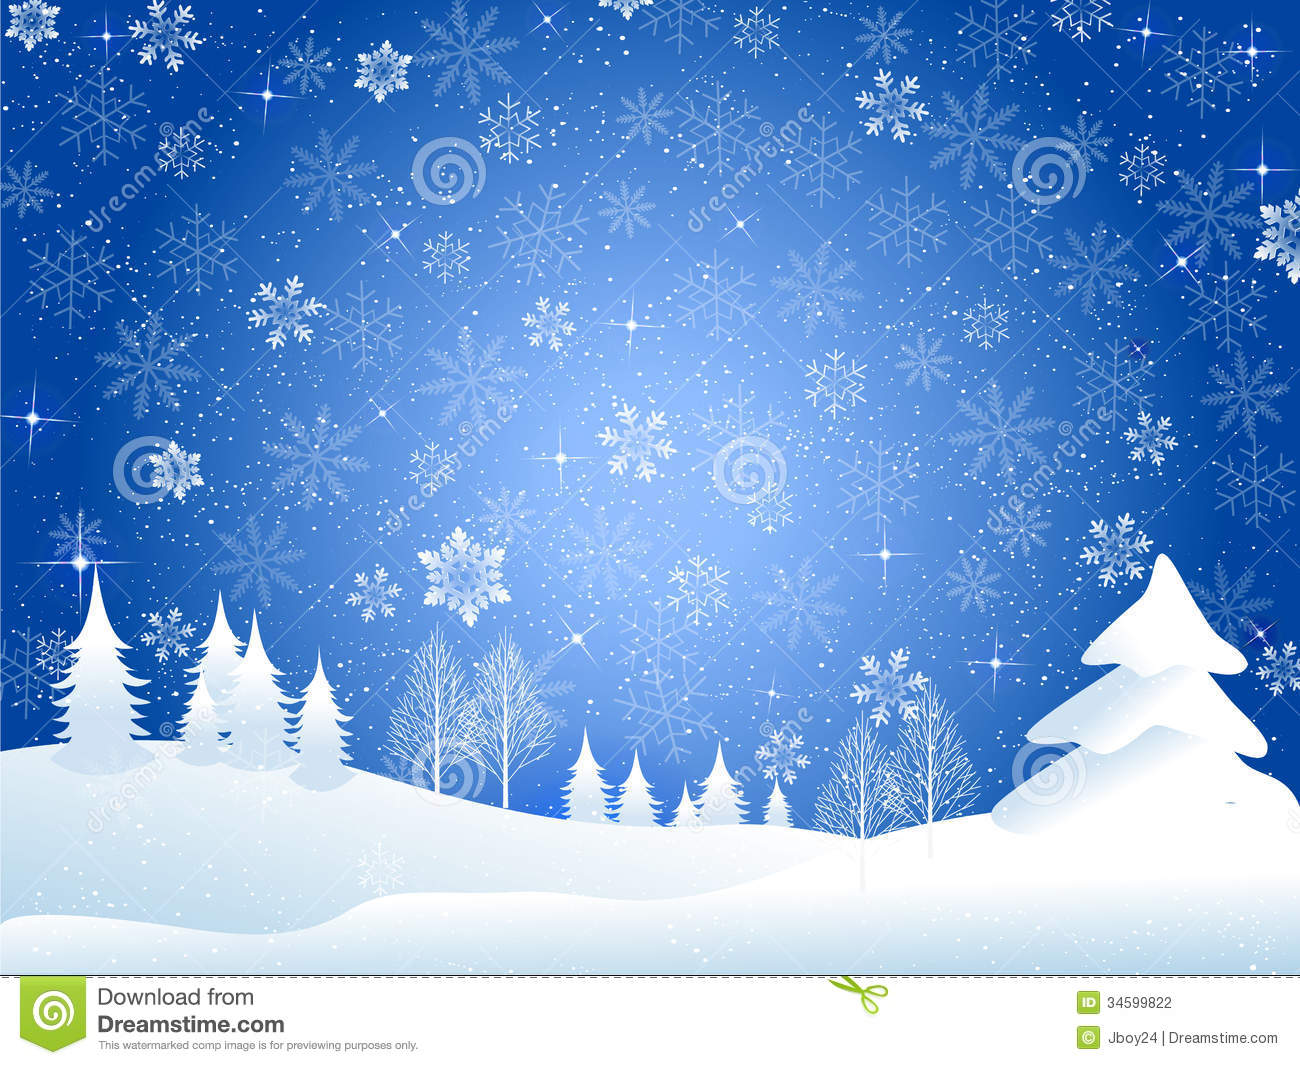 Free Animated Snow Falling Wallpaper Snow Christmas Background Stock Illustration Image Of